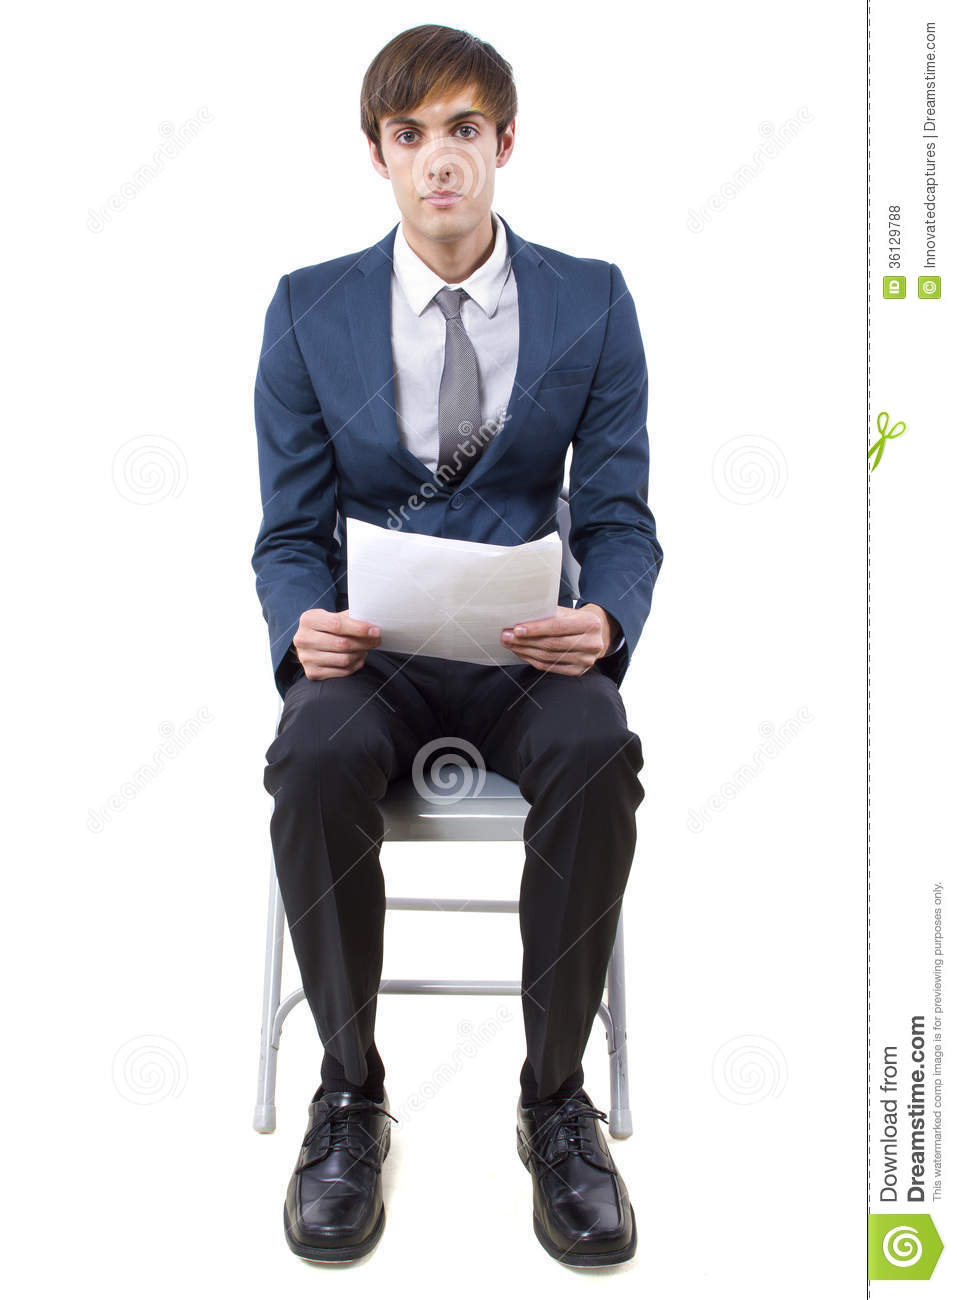 resume stock photo  image of interview  business  employee